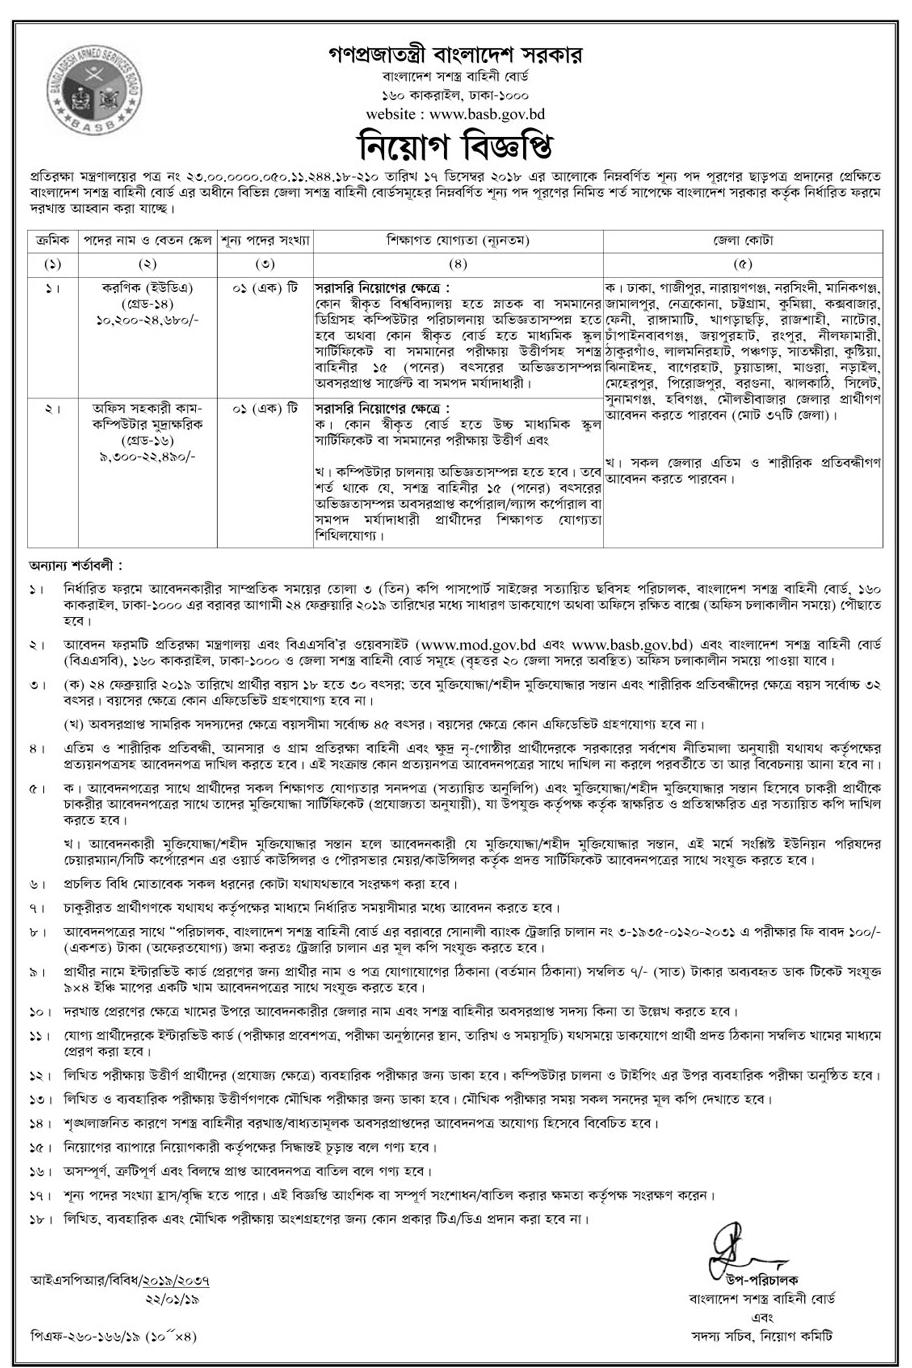 Bangladesh Armed Services Board (BASB) Job Circular 2019